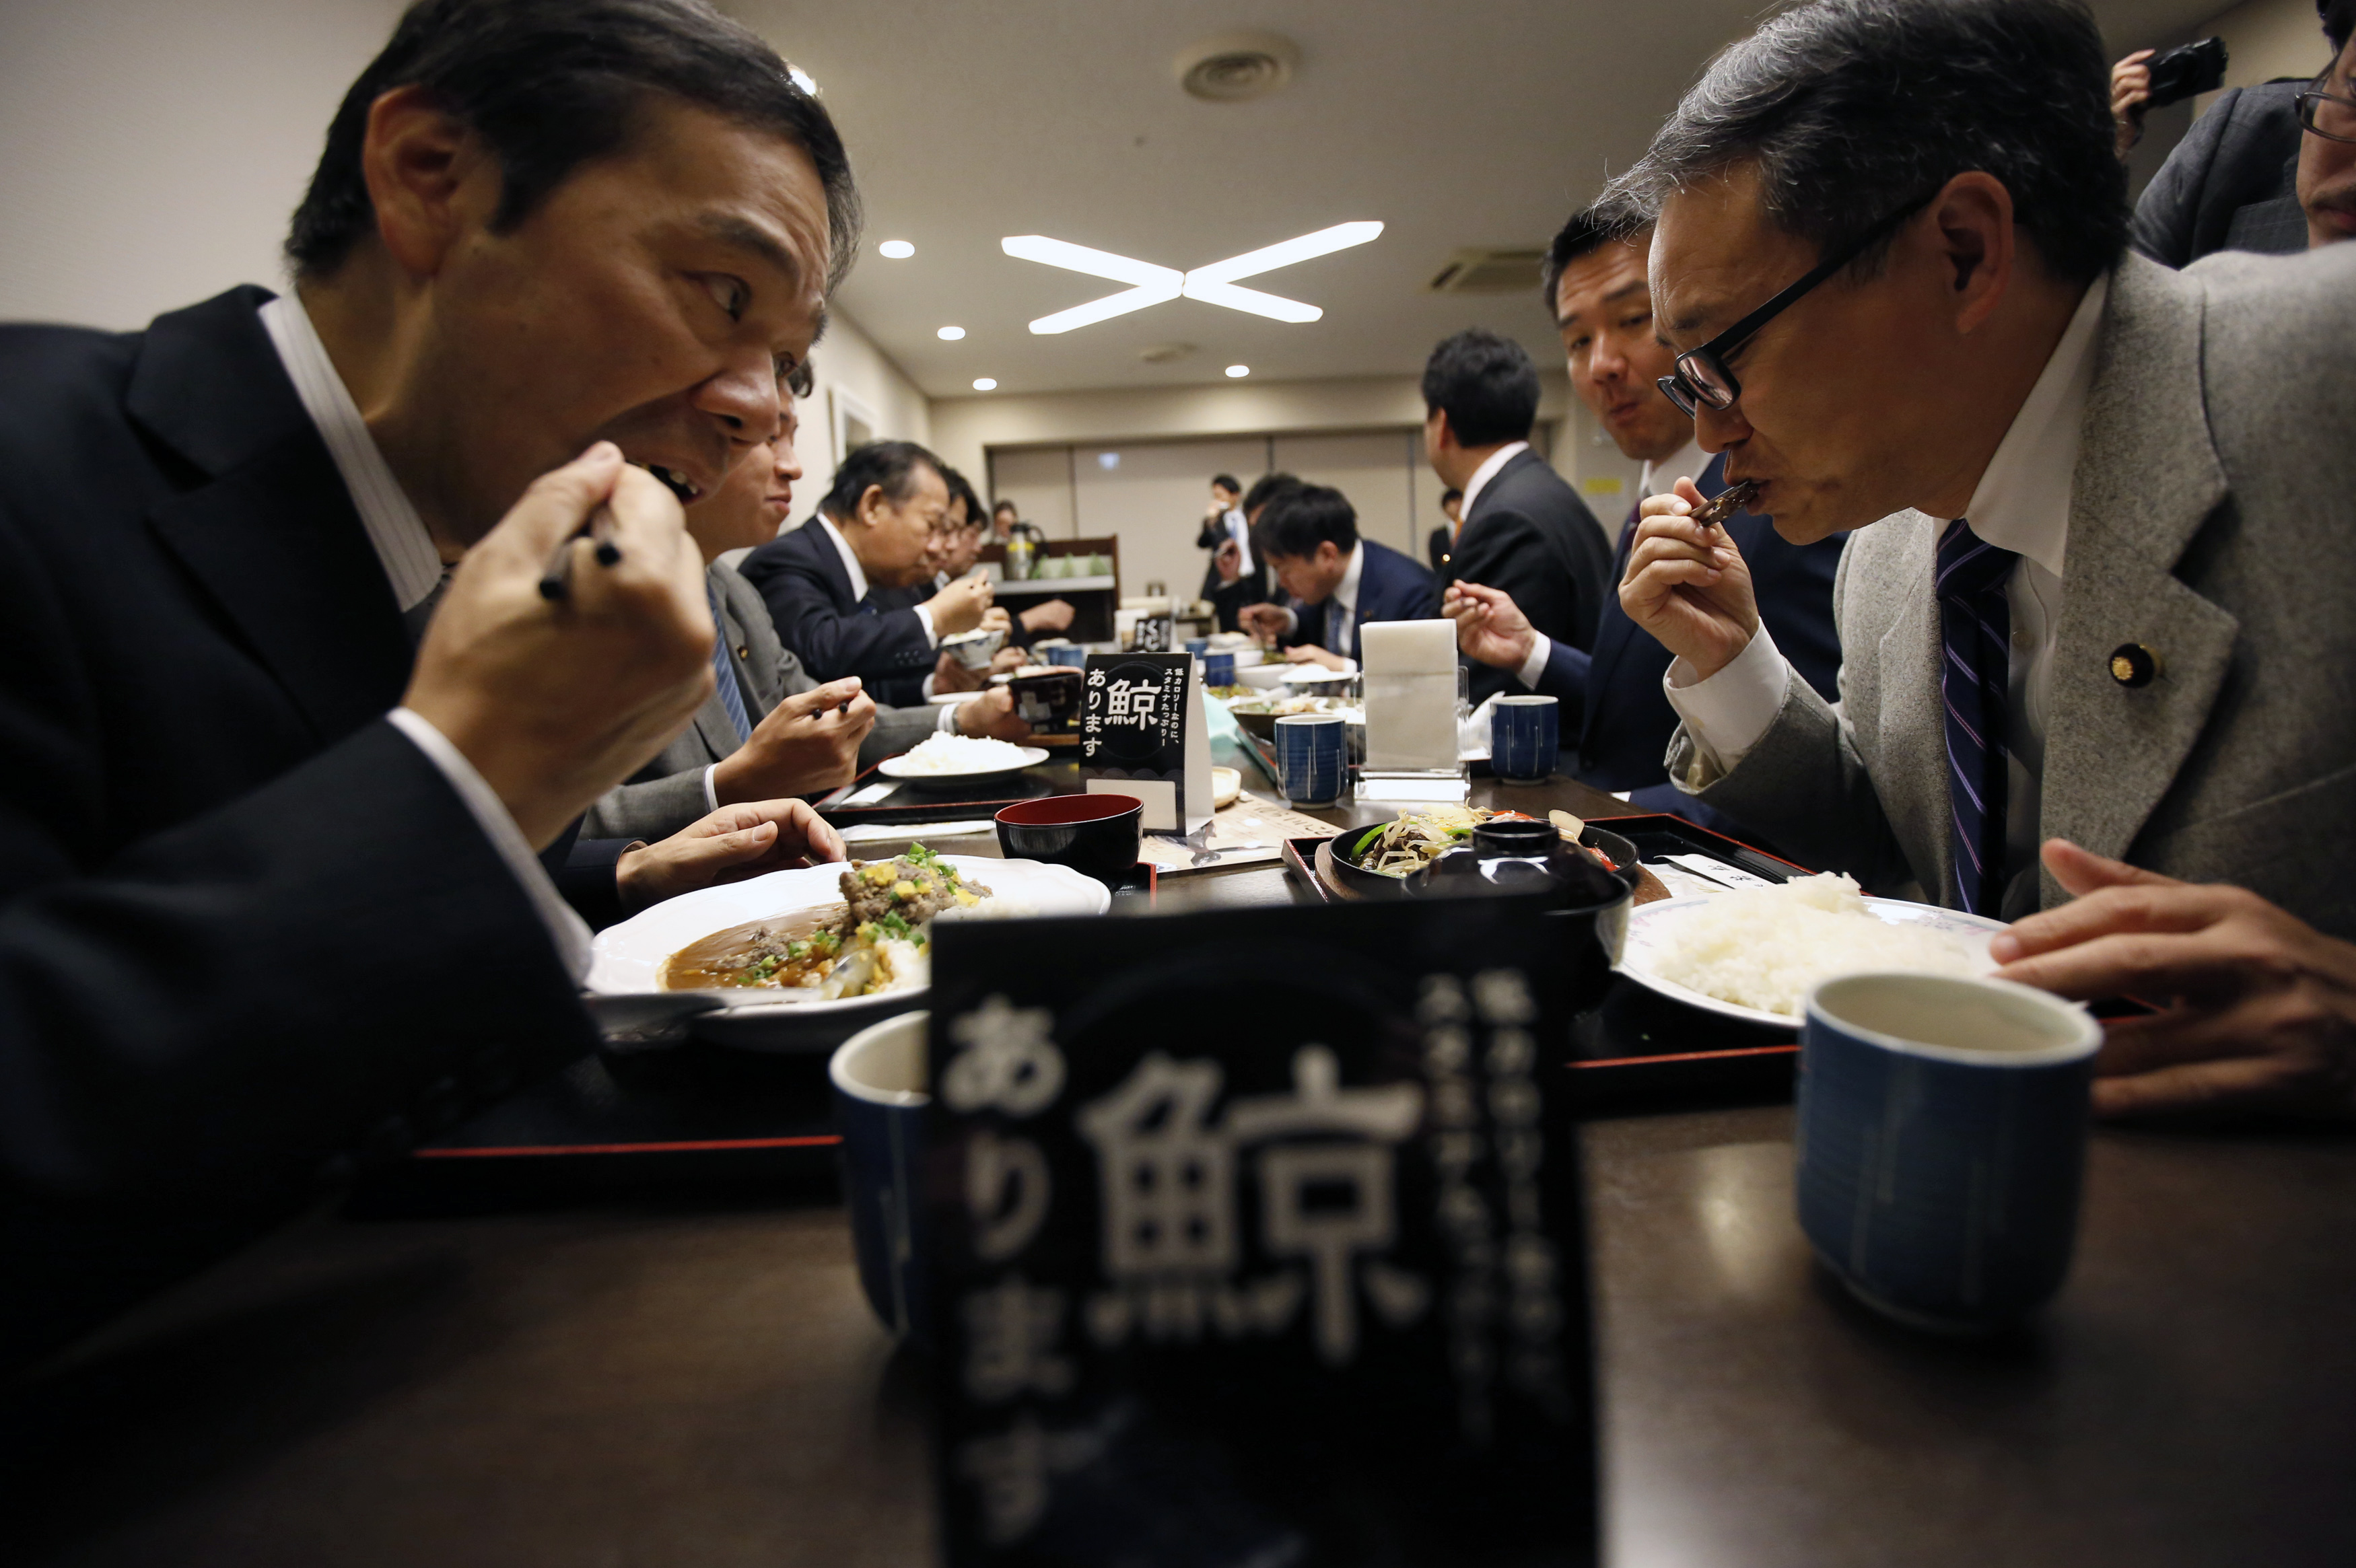 "Japanese lawmakers including Toshihiro Nikai (3rd L), former Economy, Trade and Industry Minister, and Daishiro Yamagiwa (3rd R, back toward camera), State Minister of Economy, Trade and Industry, taste whale meat menu during a whale meat promotion event at a restaurant in the ministry in Tokyo November 19, 2014. Japanese government officials lunched on whale meat on Wednesday in a bid to promote Japan's new plan to resume whale hunting in the Southern Ocean, ruled out once by the International Court of Justice (ICI) earlier this year. Japan on Tuesday unveiled plans to resume whale hunting in the Southern Ocean despite an international court ruling that previous hunts were illegal, but said it would slash the quota for the so-called scientific whaling programme. The small placard on the table (C) reads: ""Whale meat available here"". (Foto: Issei Kato/Reuters)"